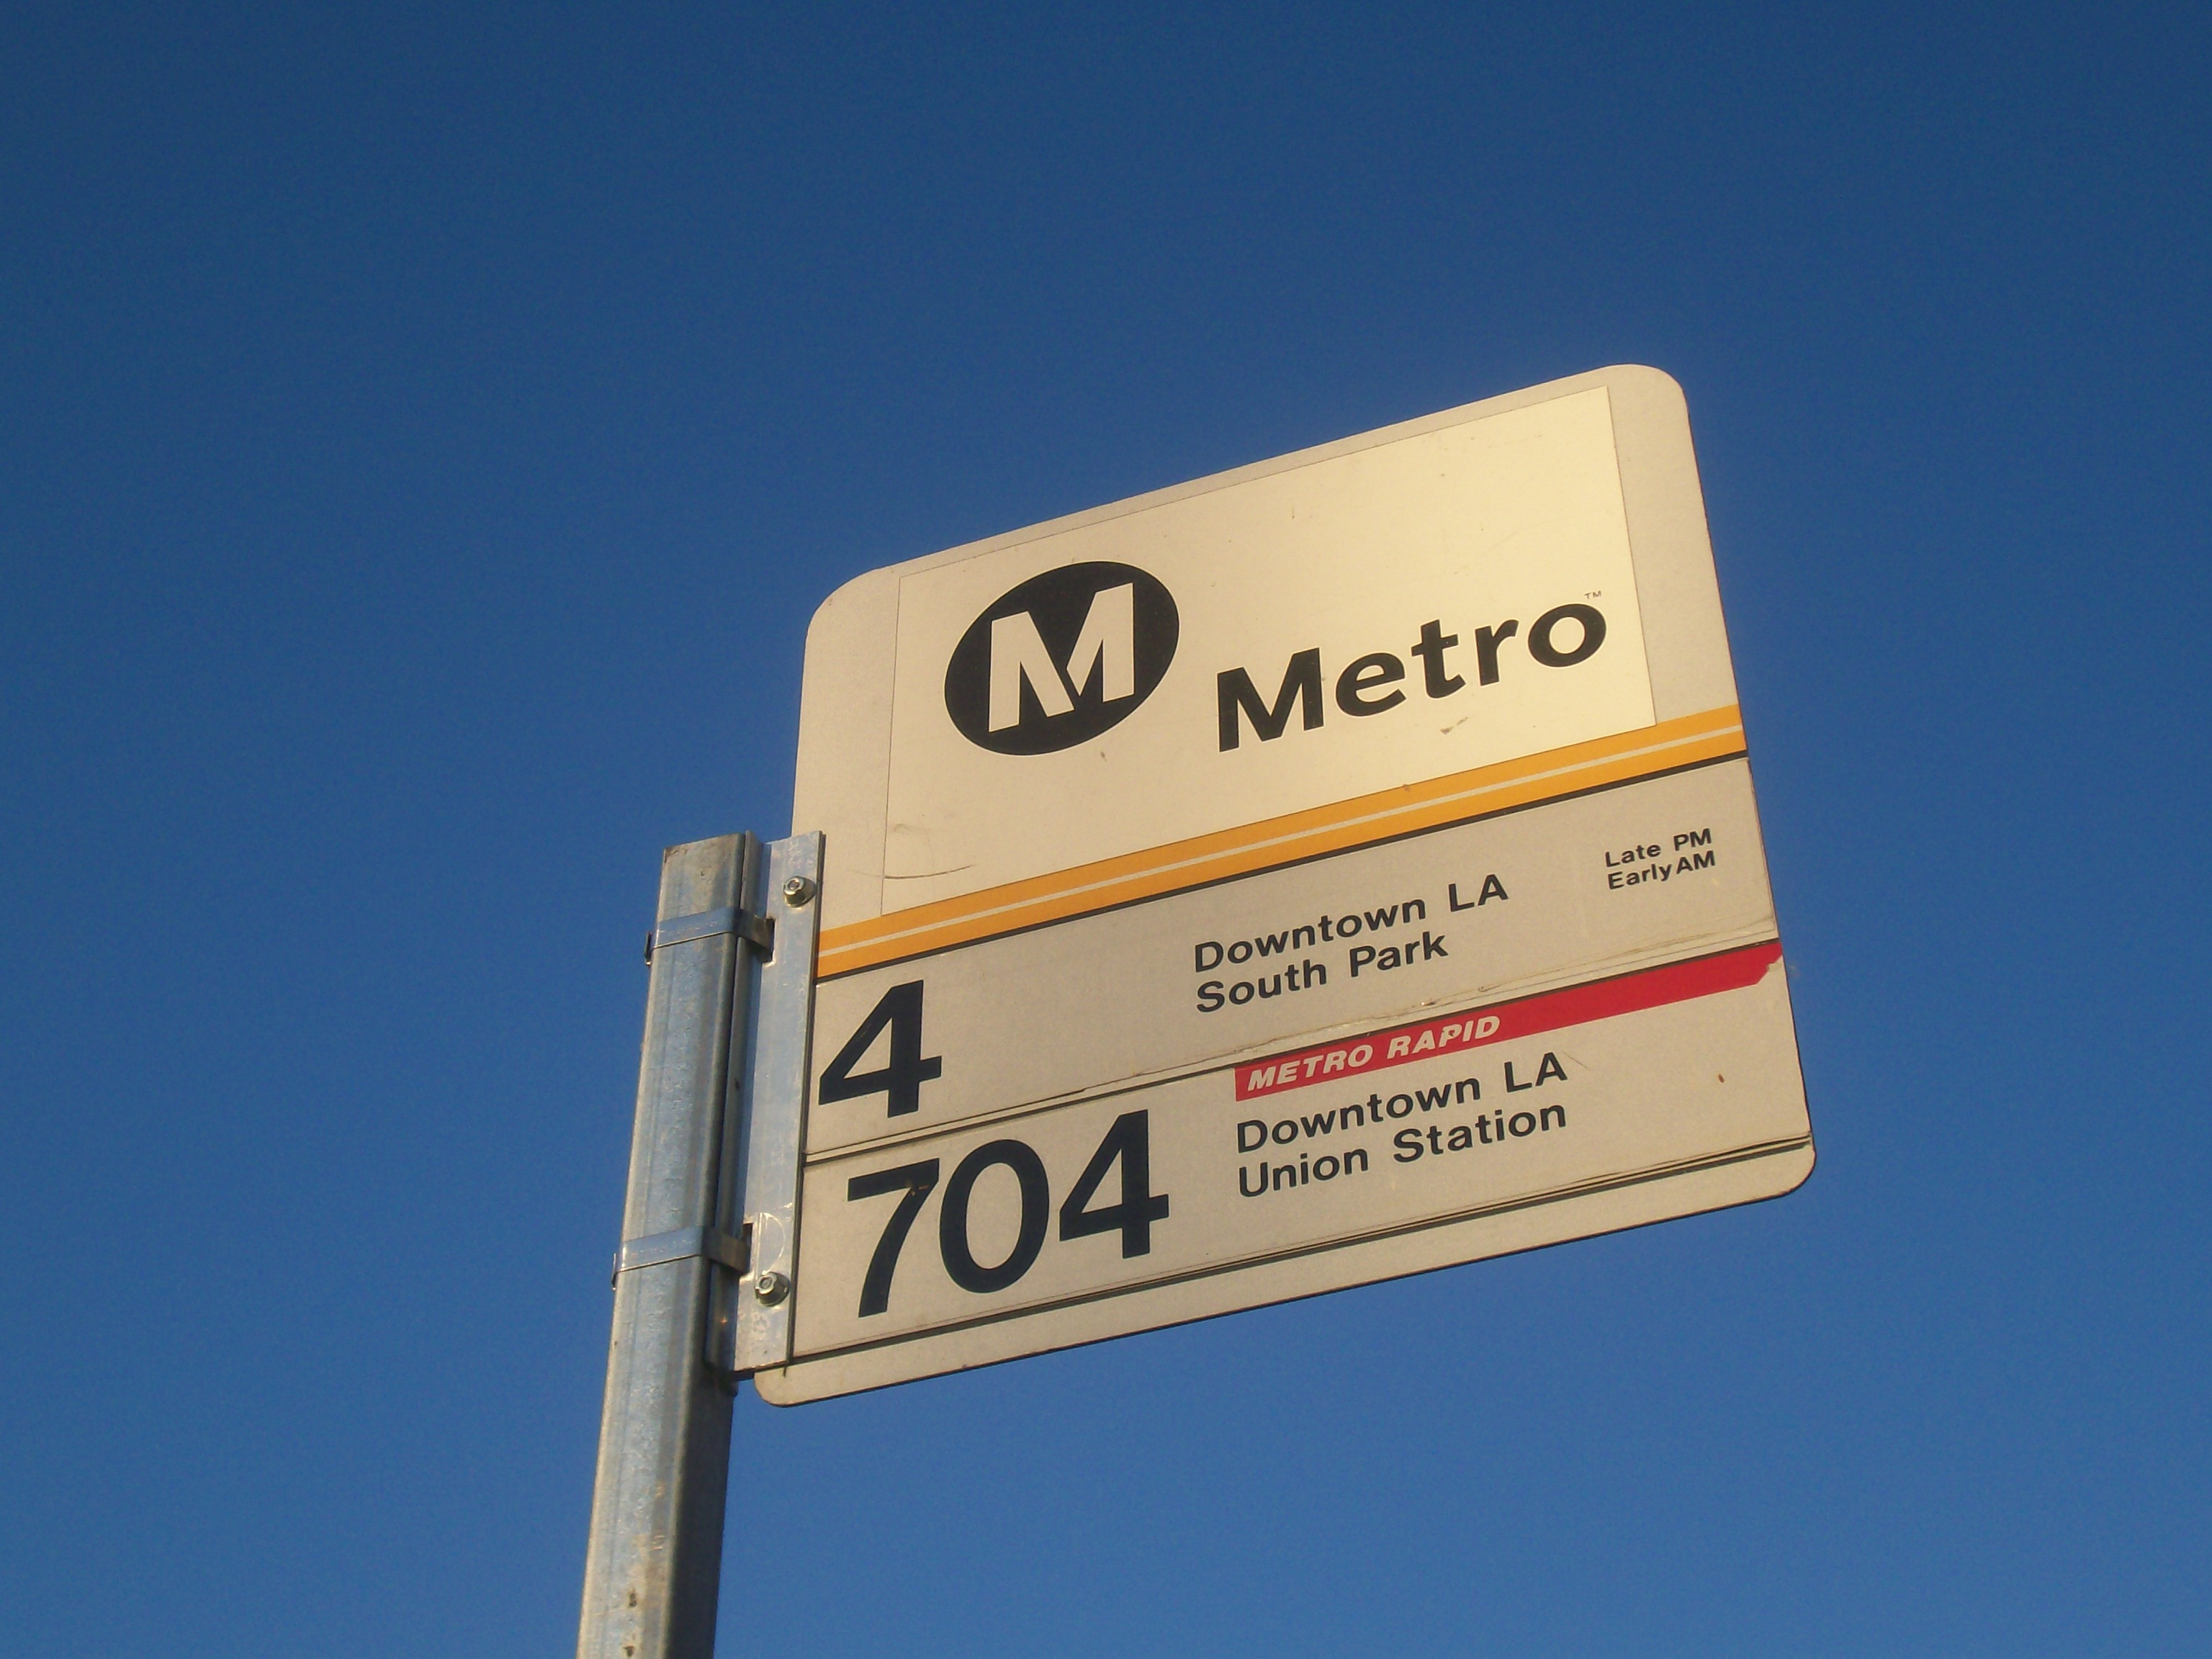 Metro bus stop sign for Local line